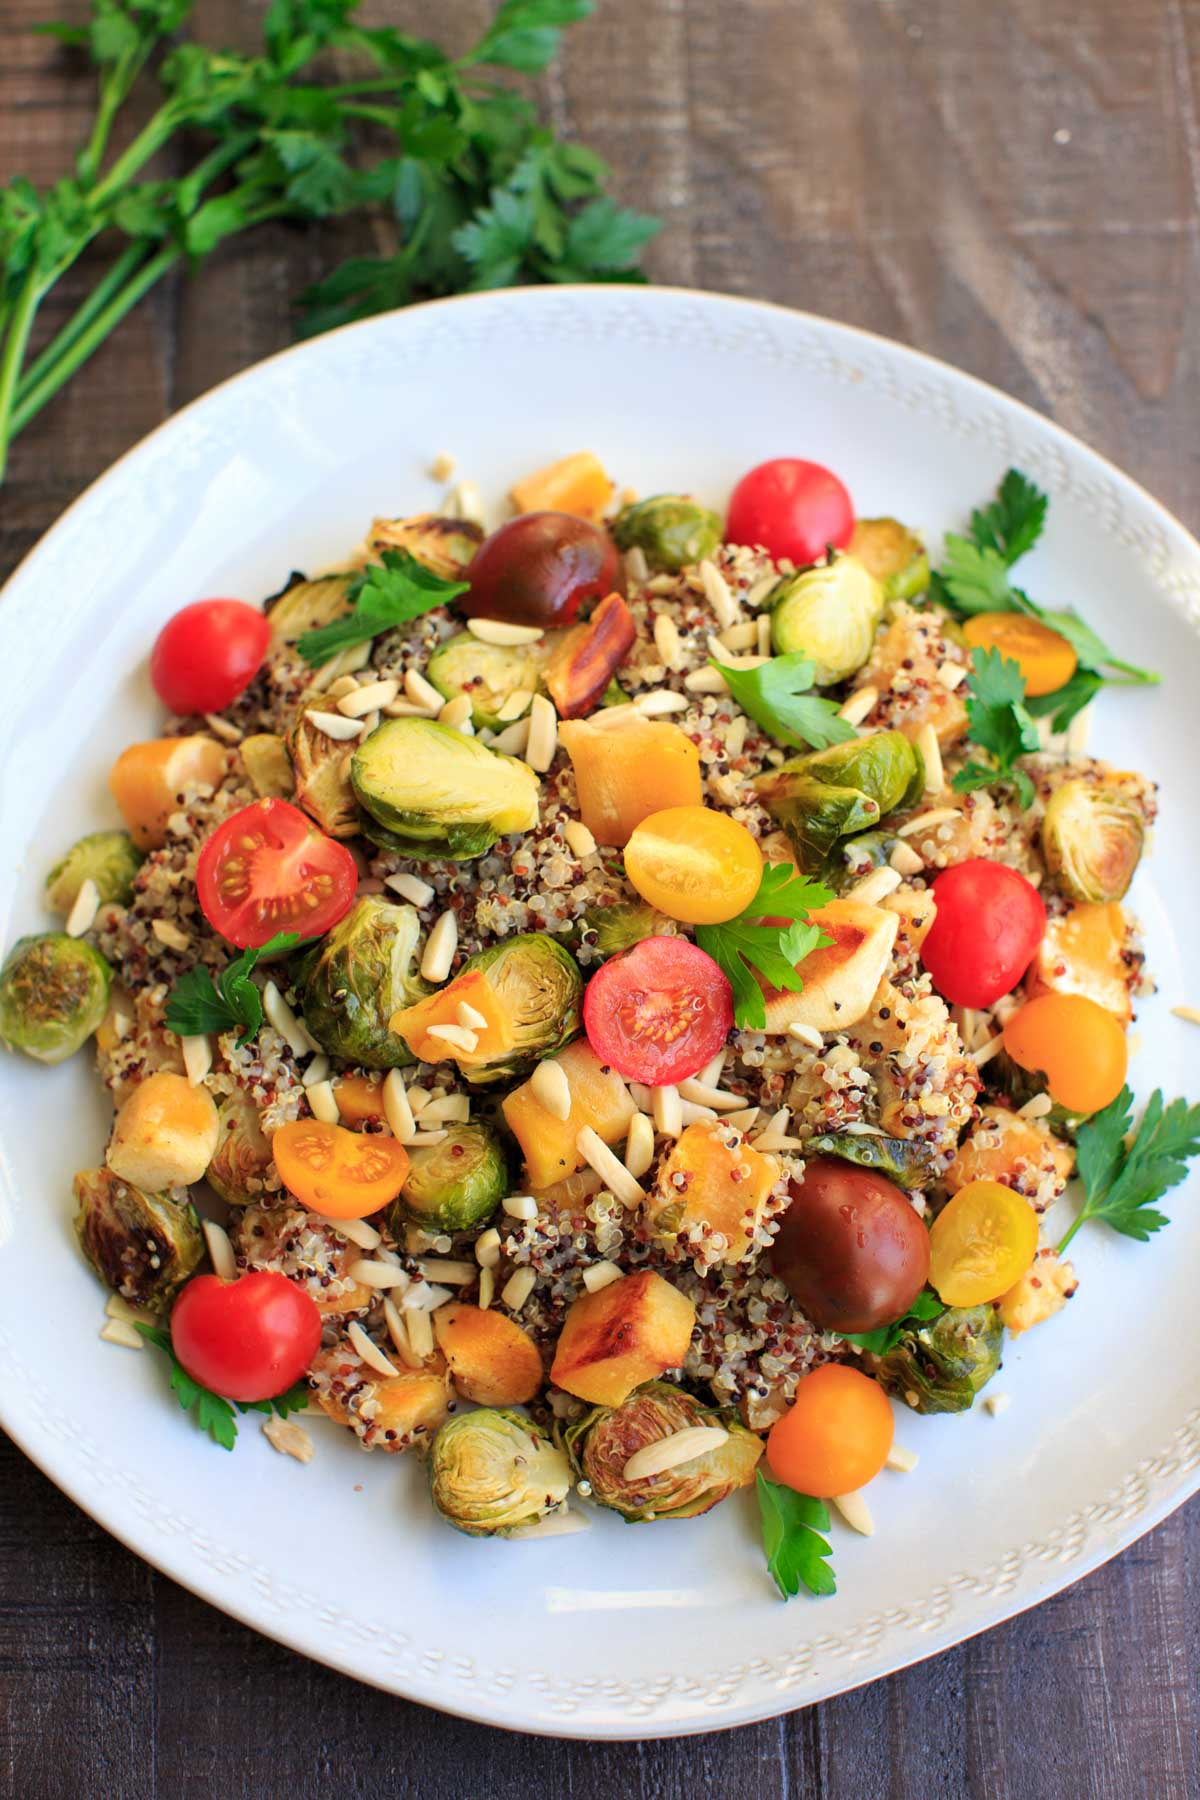 Fall Quinoa Salad with Brussels Sprouts, Butternut Squash and Parsley